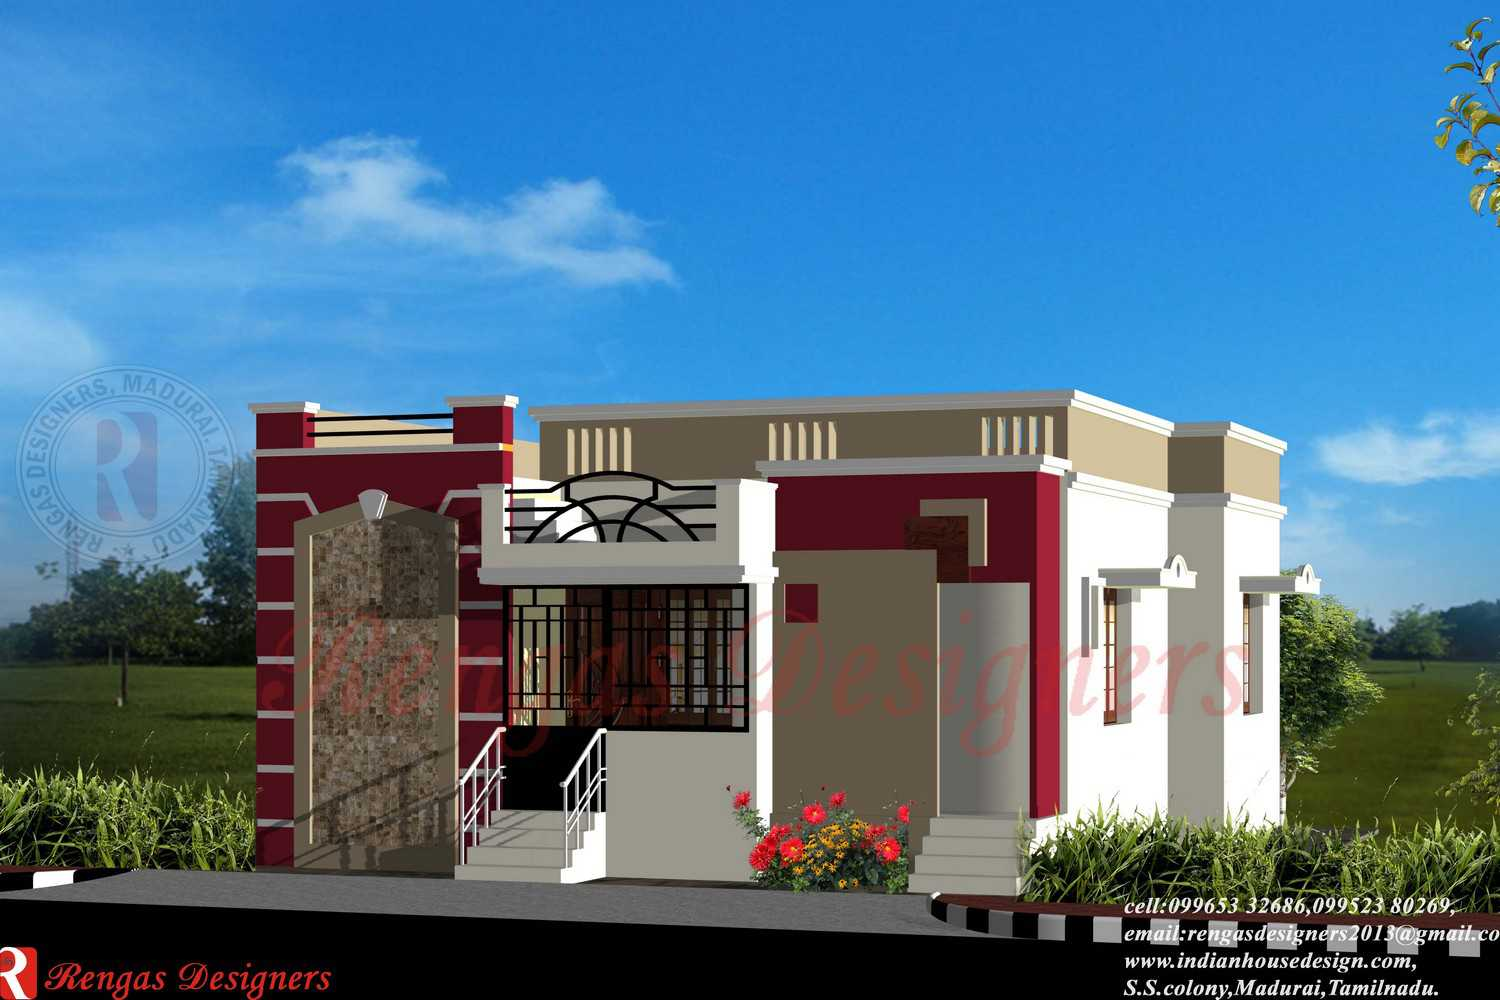 Home design one floor one floor house design plansphotonetinfo home design 1 floor